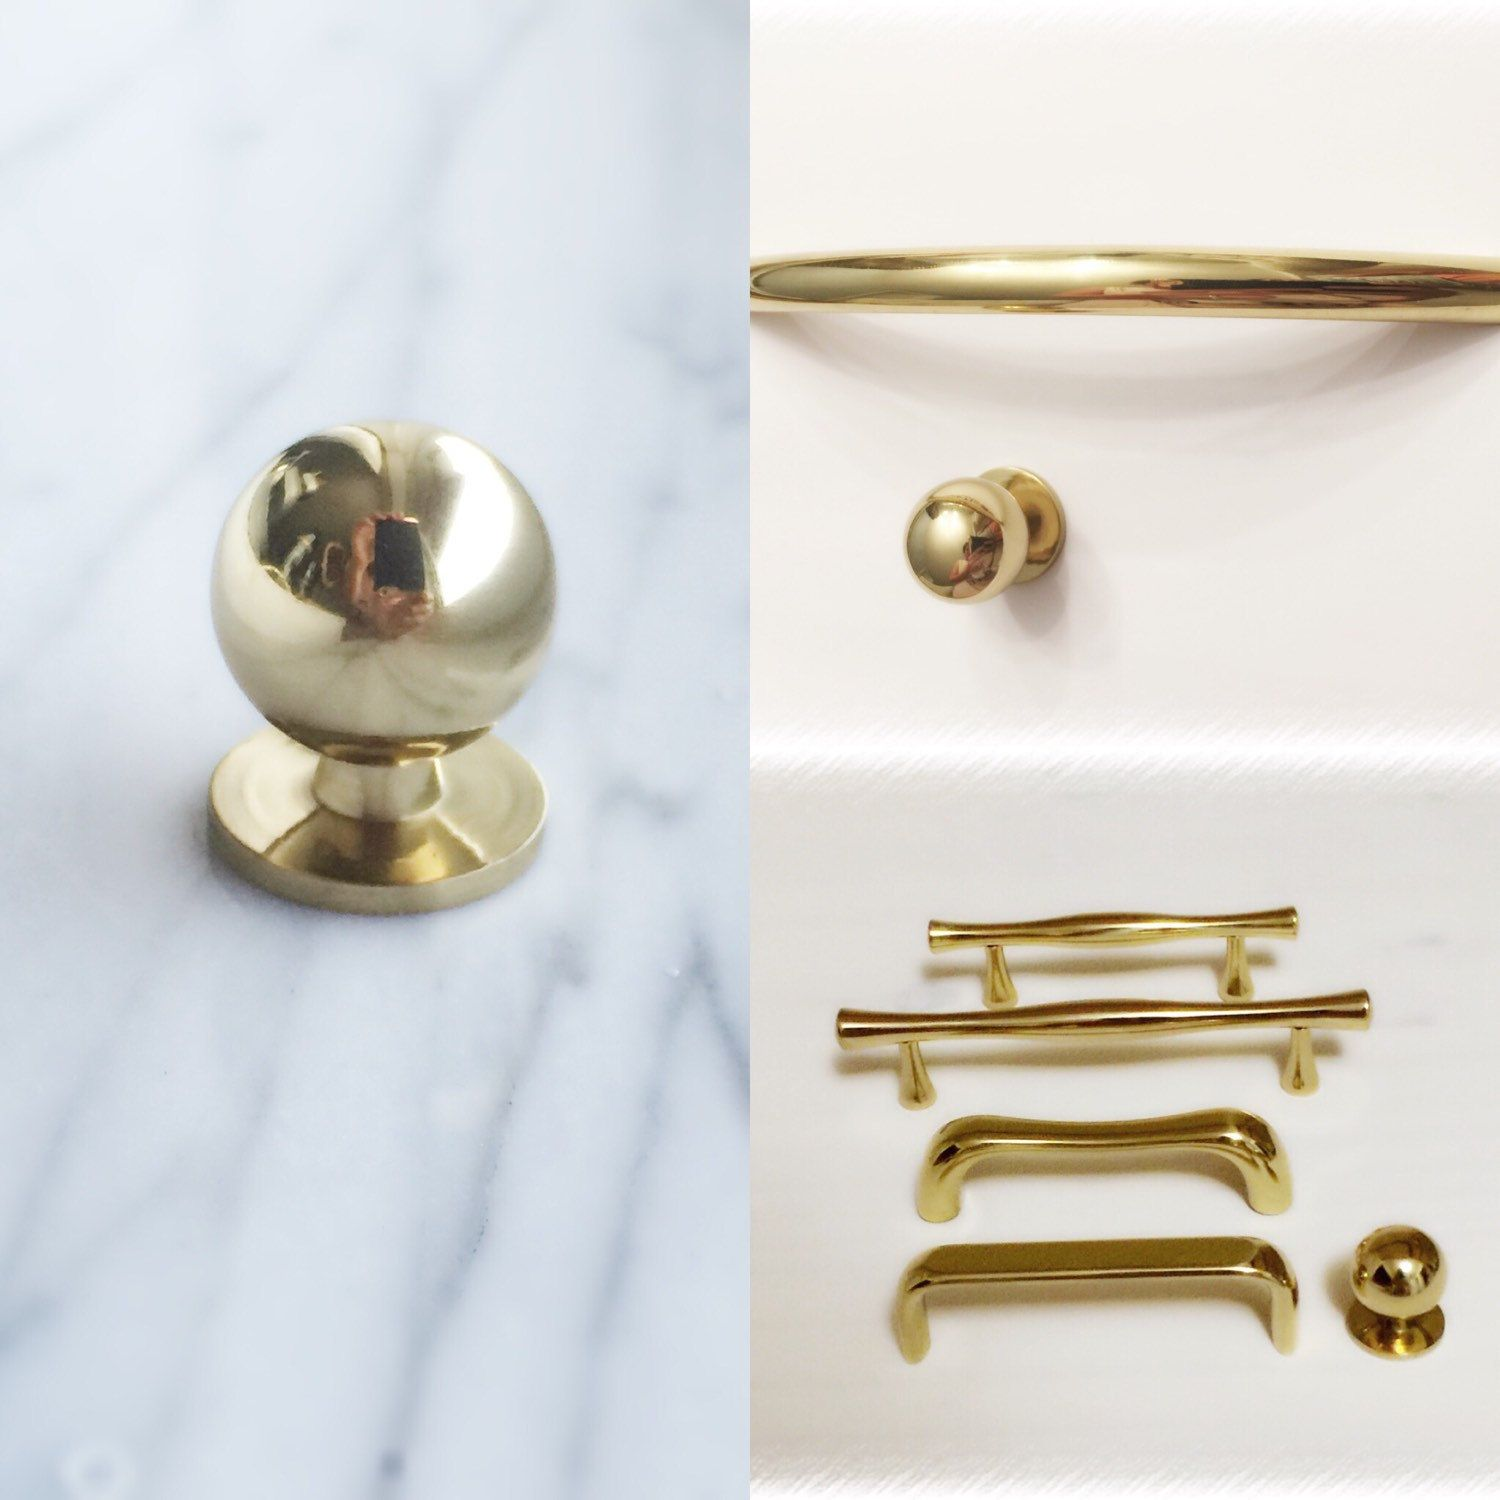 Polished brass hardware from ForgeHardwareStudio Etsy starting